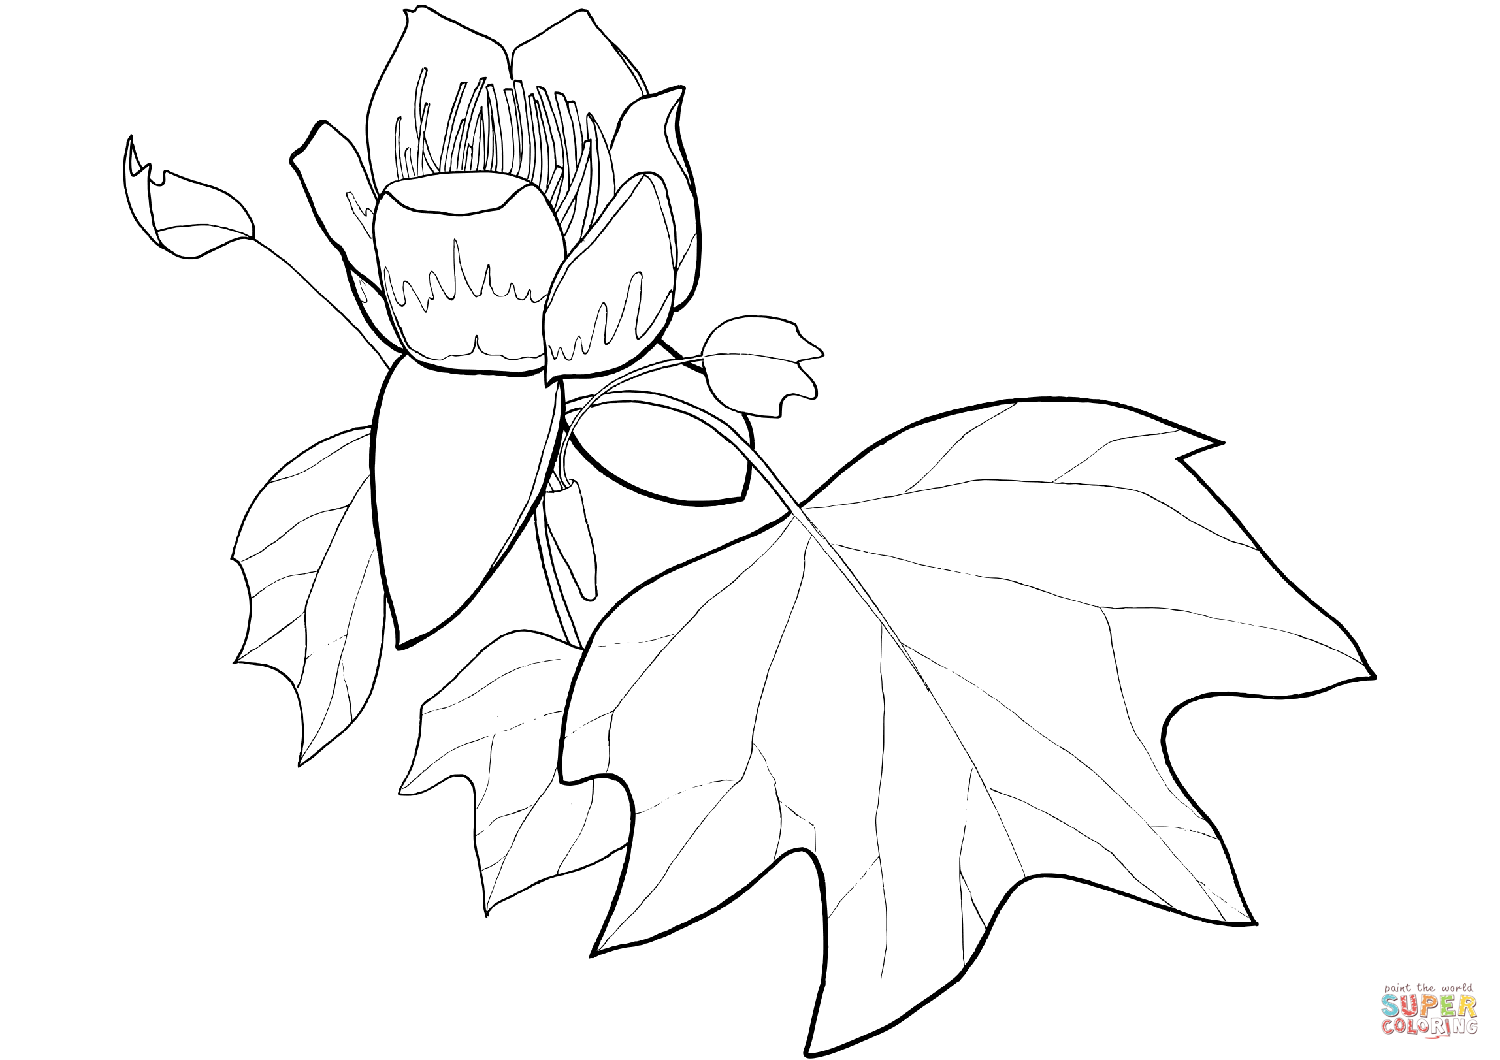 1500x1060 Tulip Poplar Flower And Leaf Coloring Page Free Printable